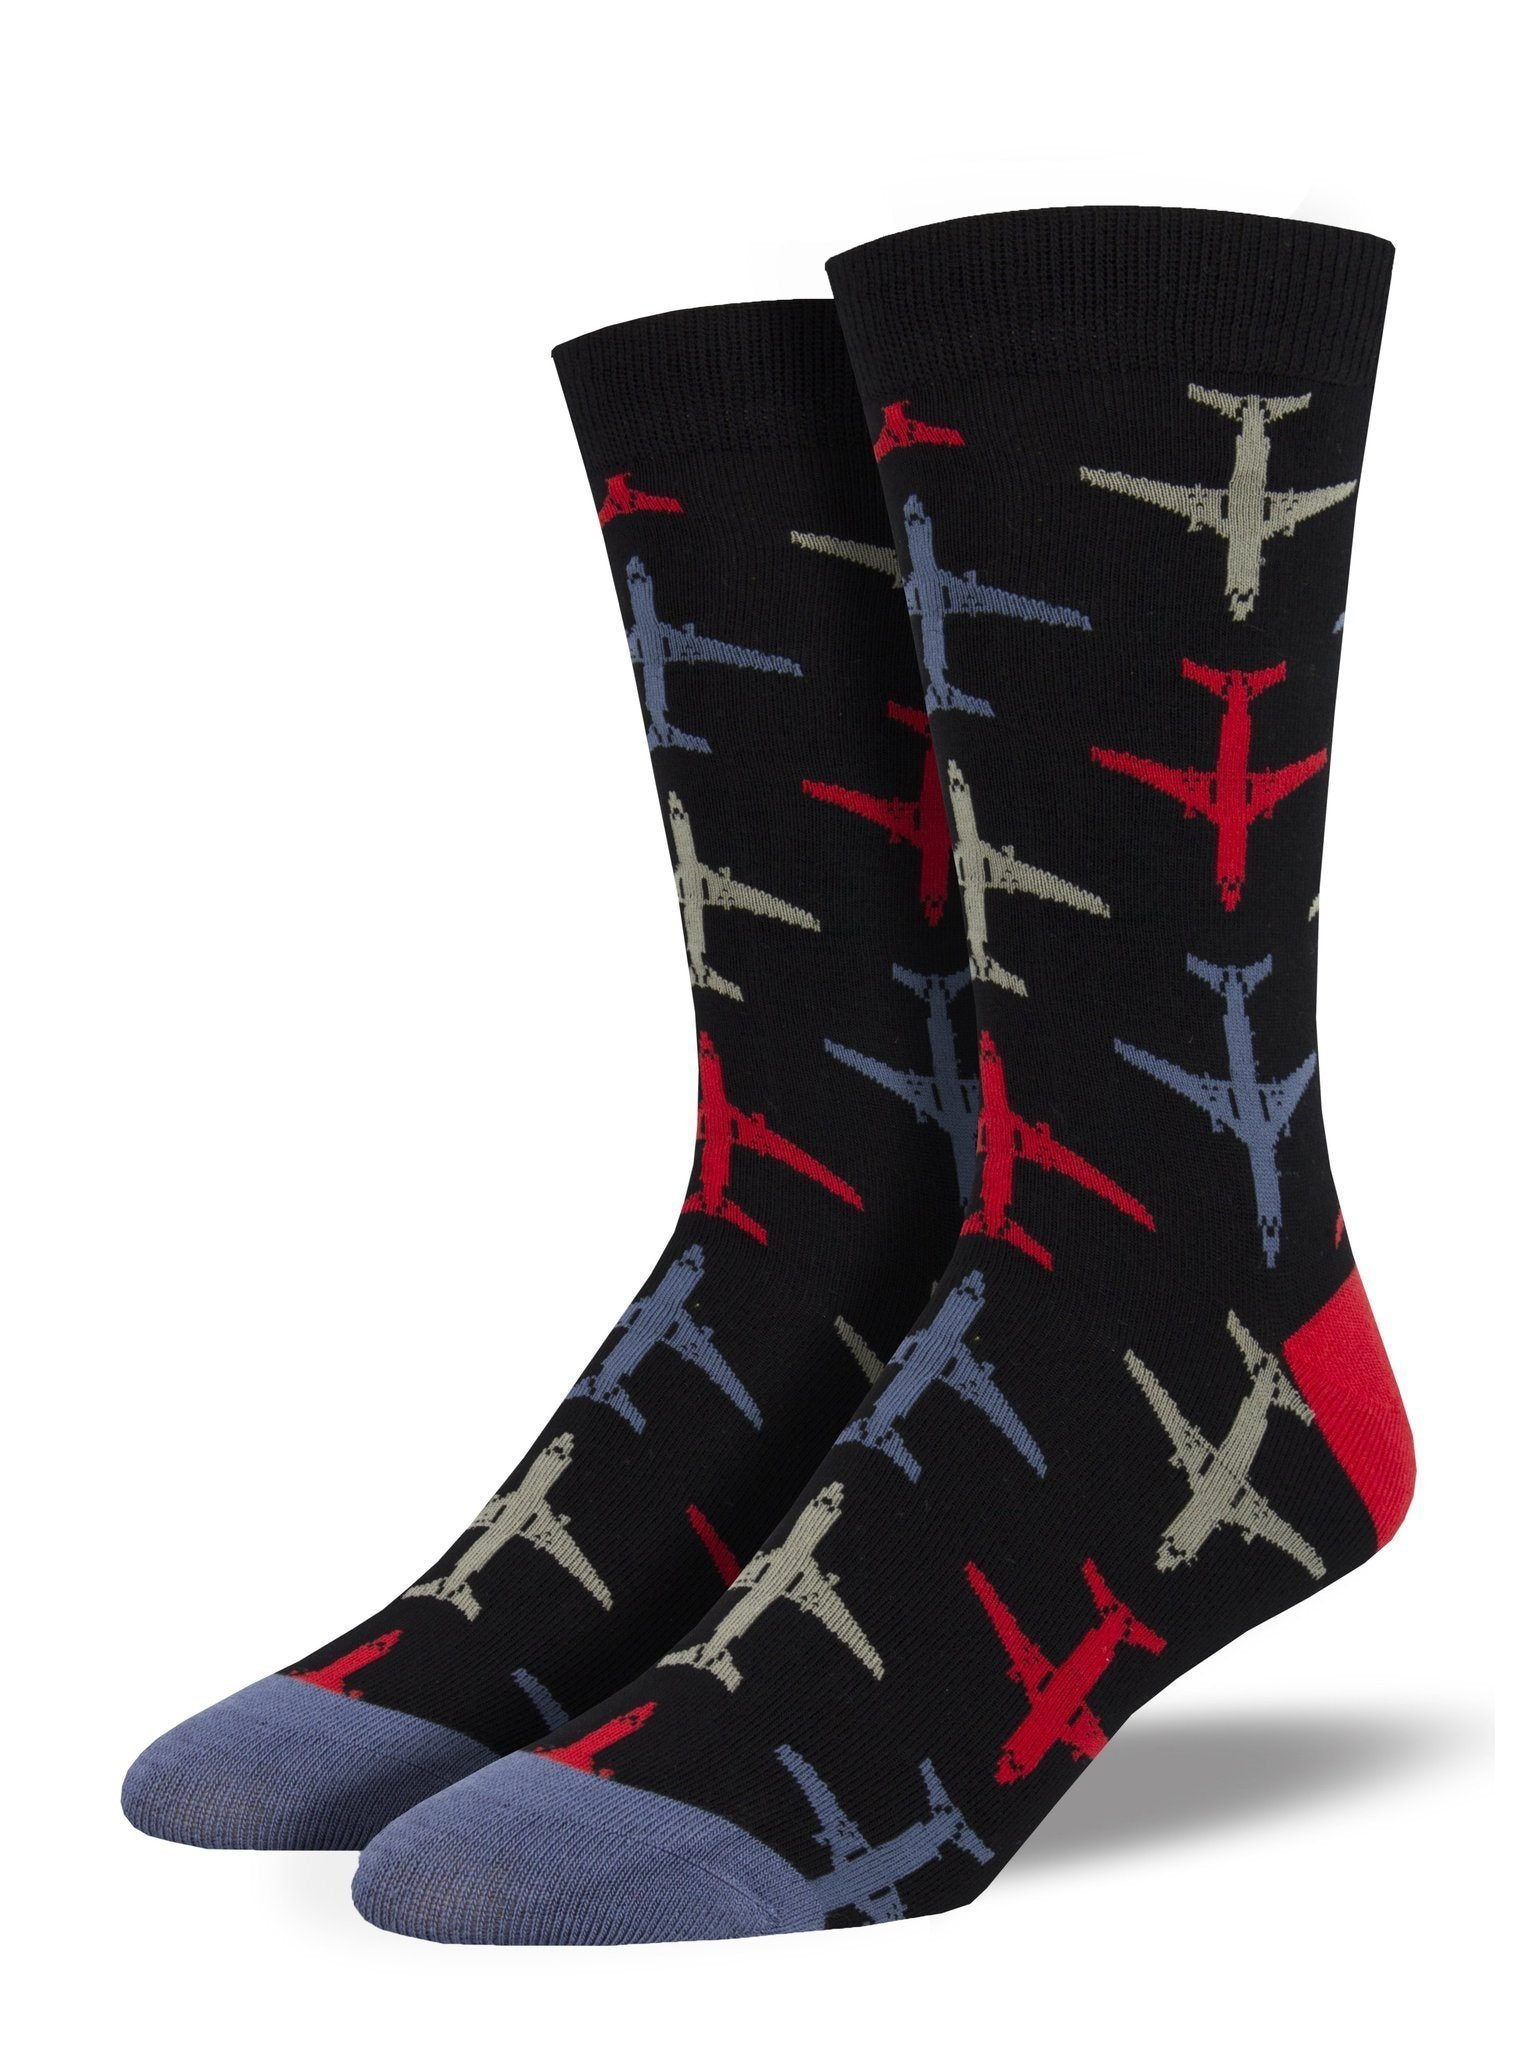 Socksmith - Bamboo Airplanes Crew Socks | Men's - Knock Your Socks Off